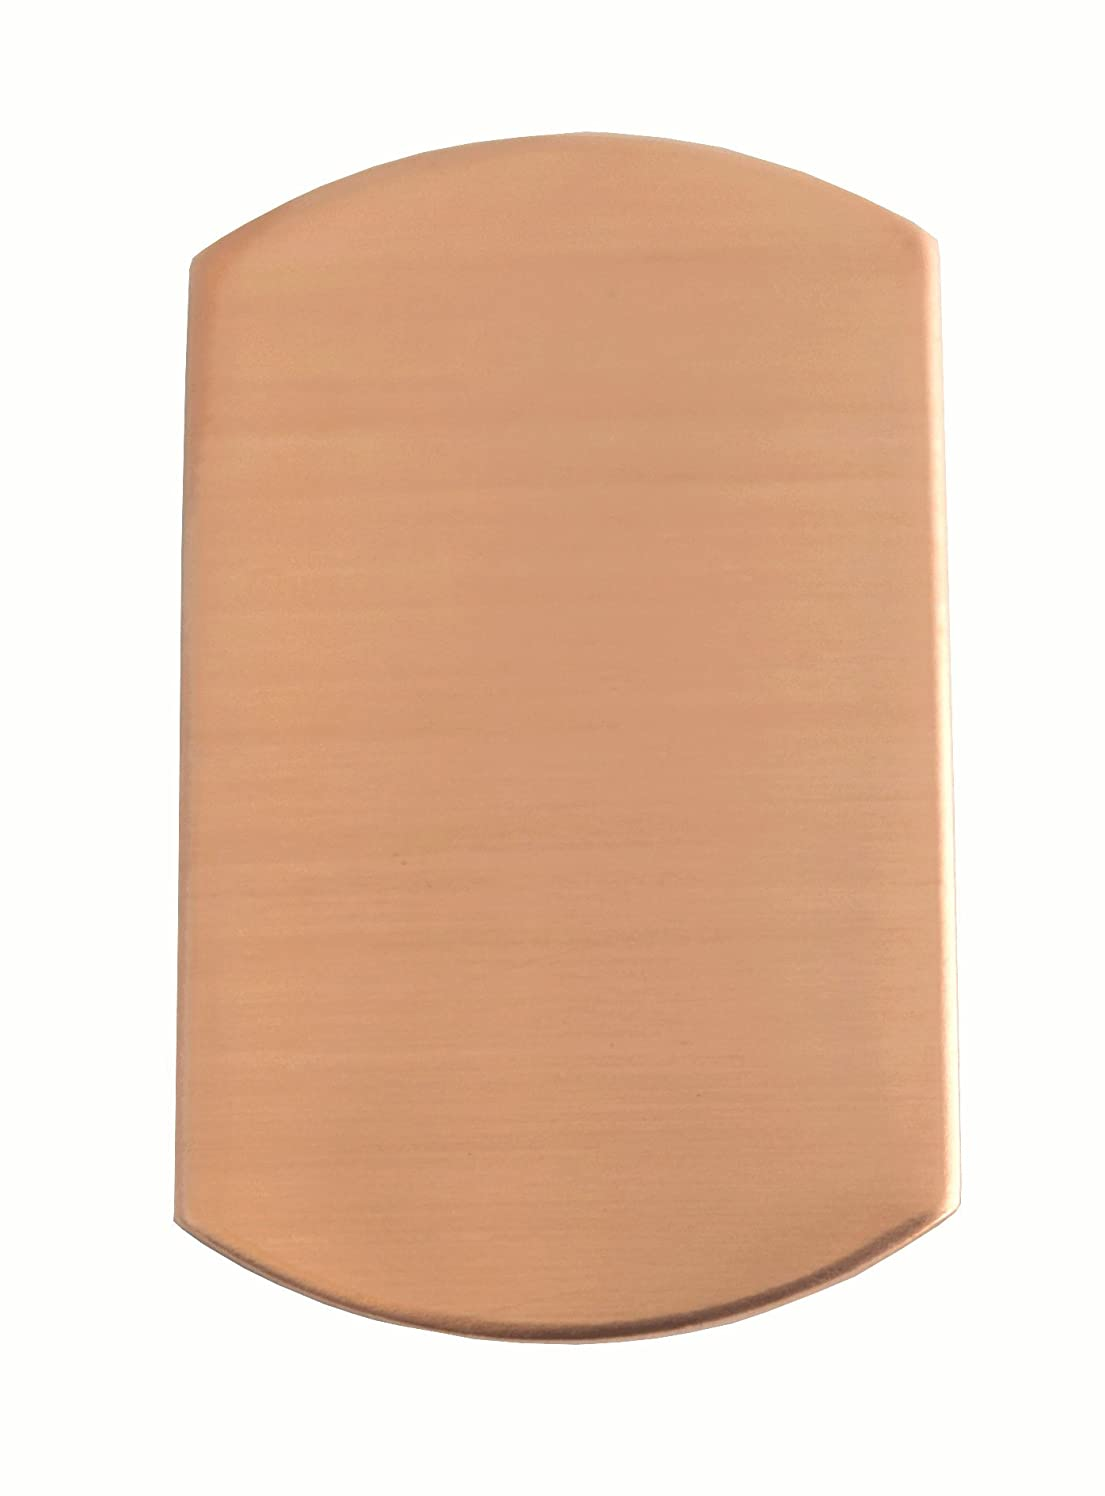 RMP Stamping Blanks, 3/4 Inch x 1-1/4 Inch Dog Tag, Copper 0.021